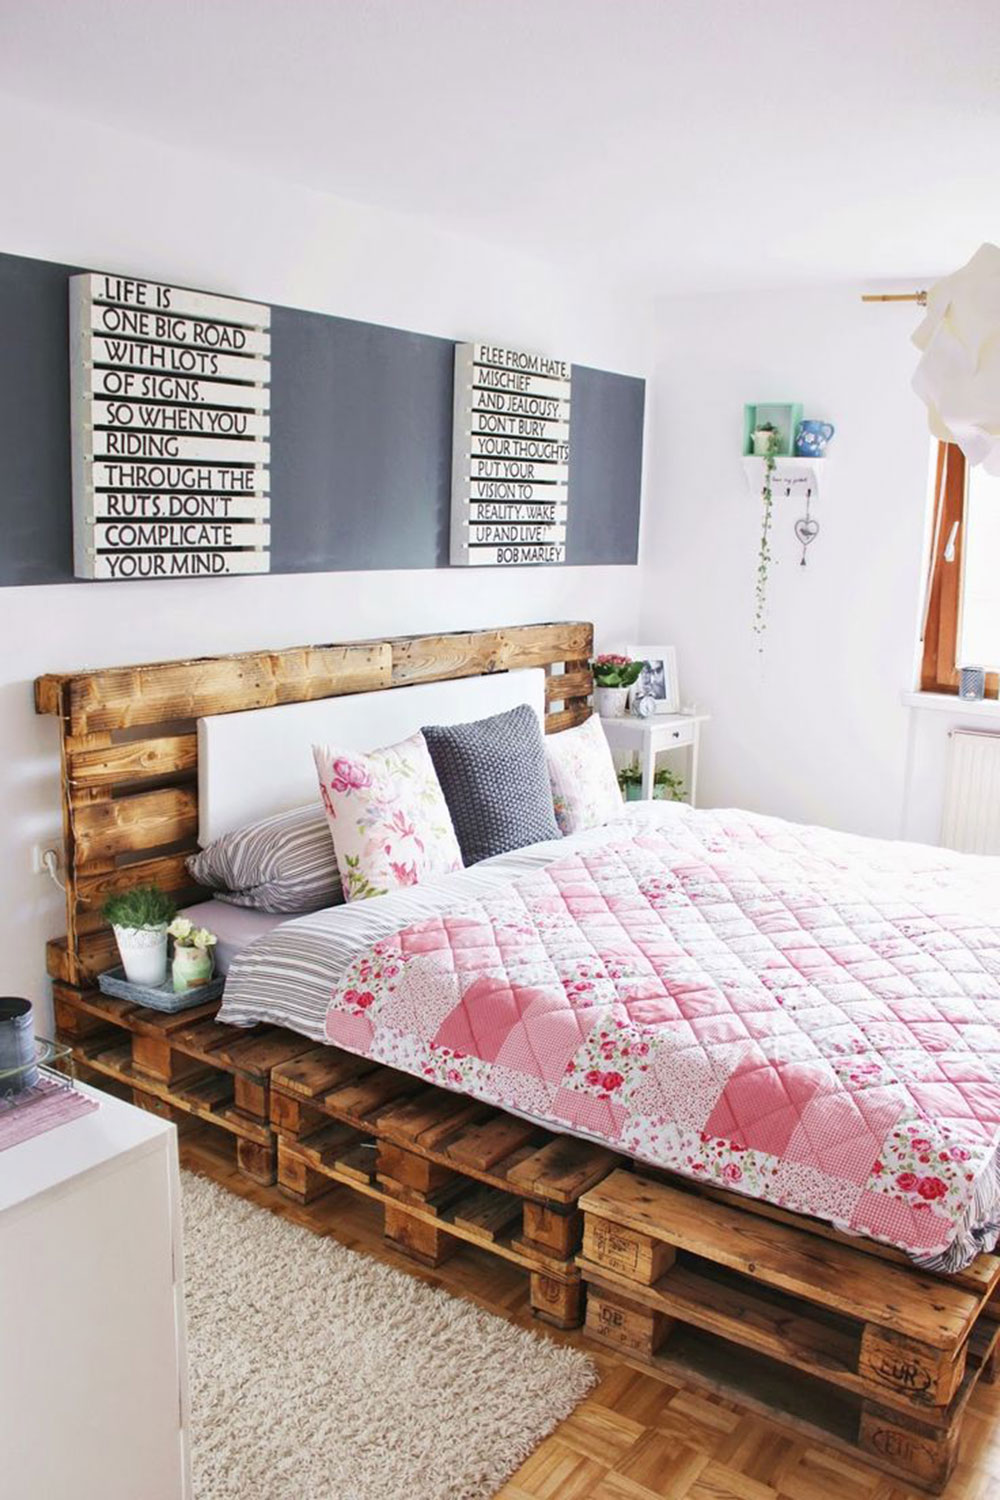 Great Pallet Bed Ideas To Brighten Your Room3 Great Pallet Bed Ideas To Brighten Your Room